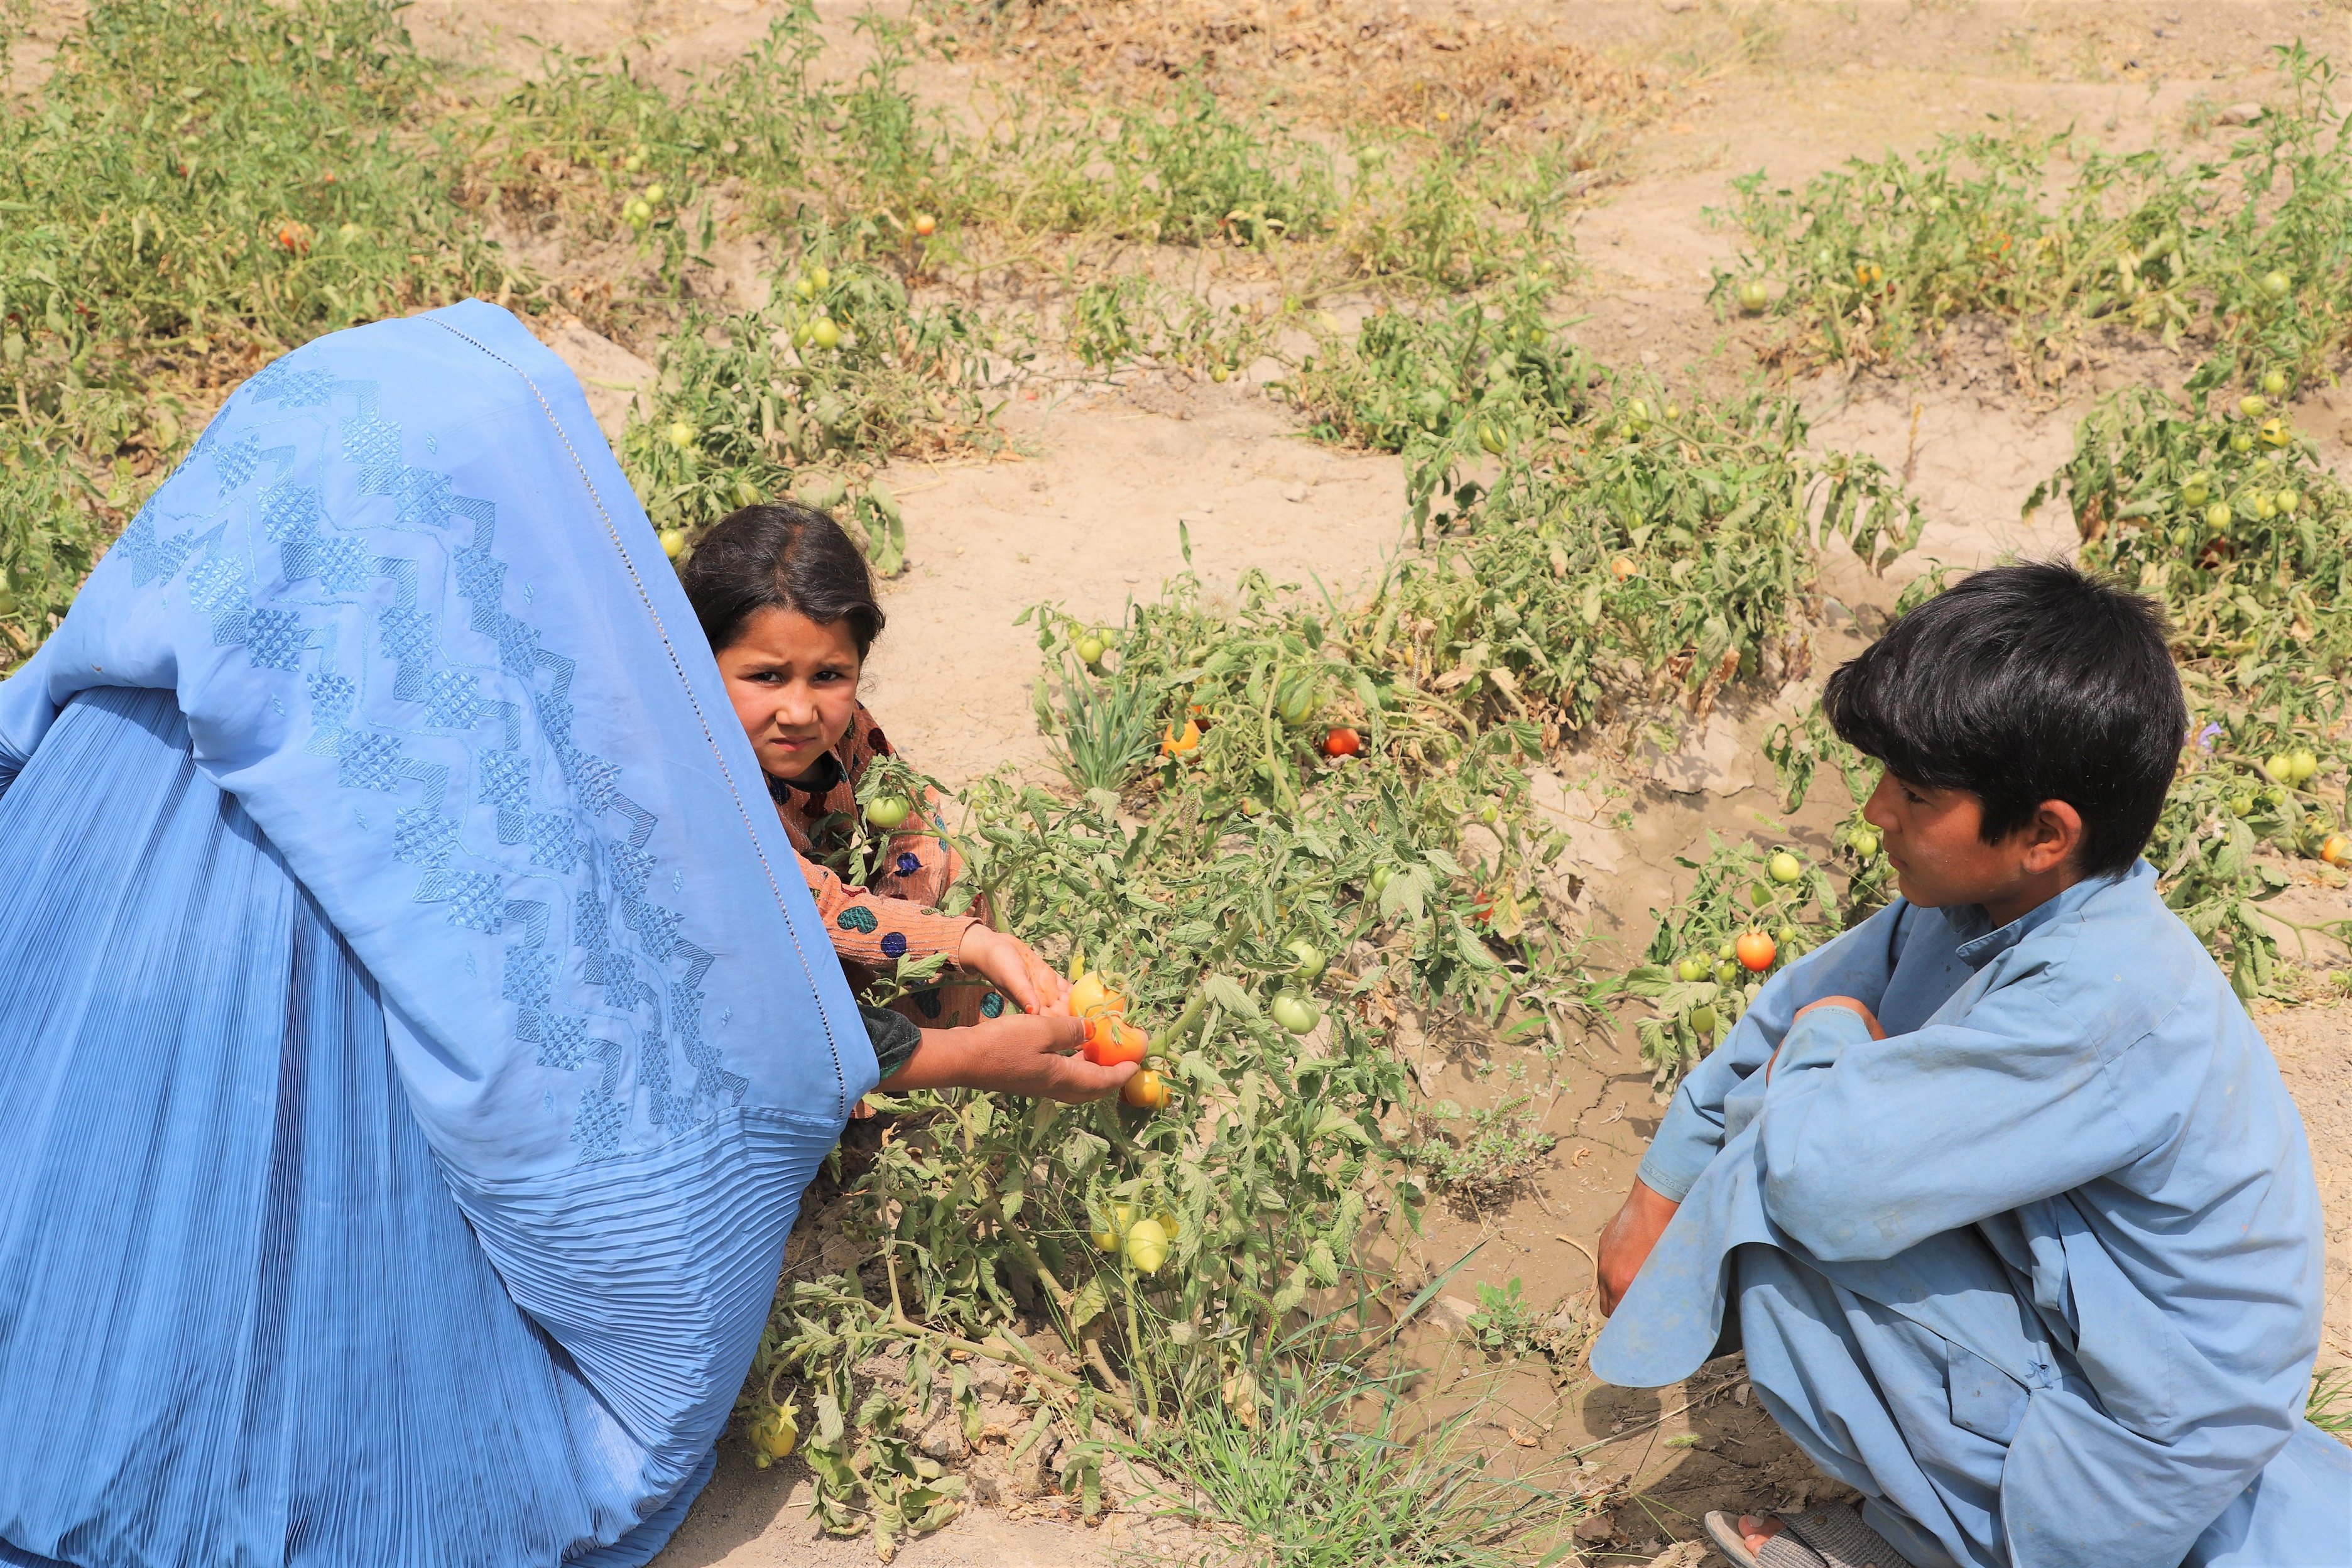 Sahar Gul and her children are in the garden of her yard.